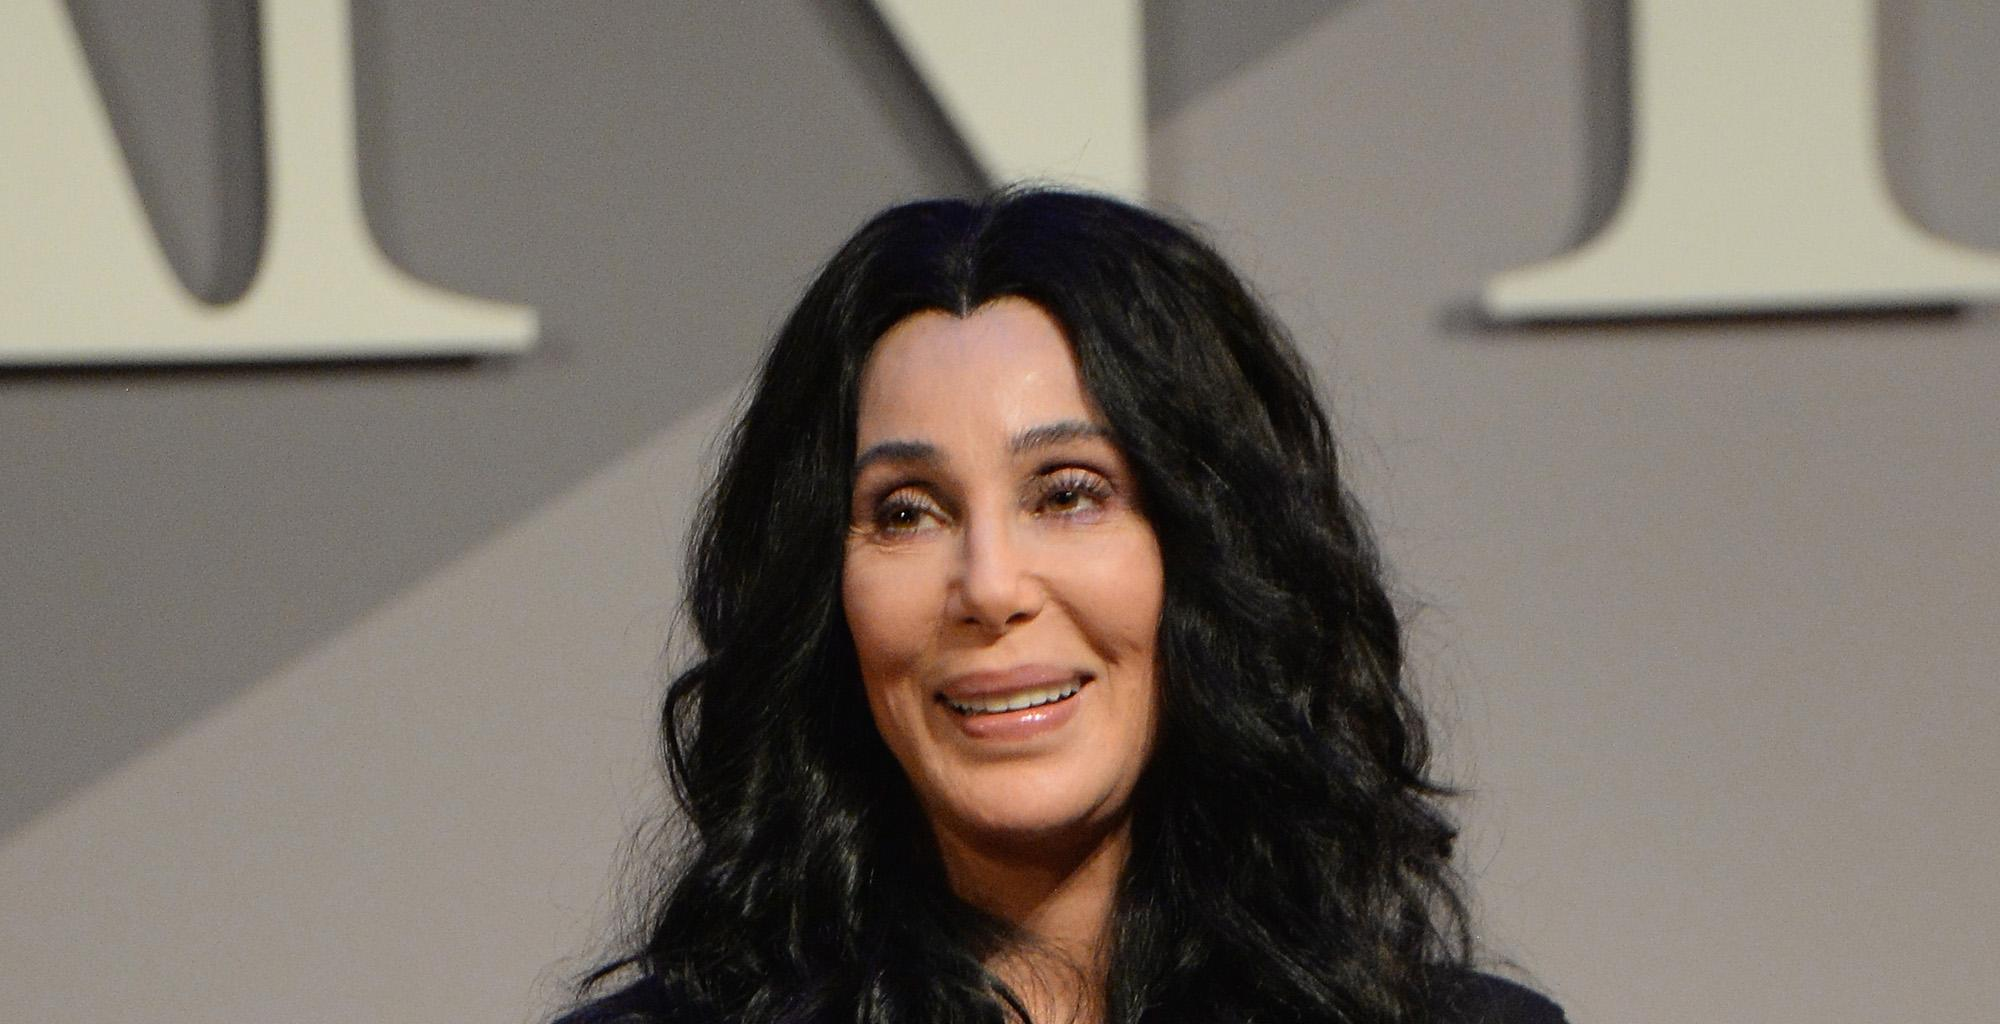 Cher Questions If Anyone Making Money Off Of Britney Spears Wants Her To Be Well -- Tells Fans 'Everyone In Vegas' Has Heard Stories About Britney